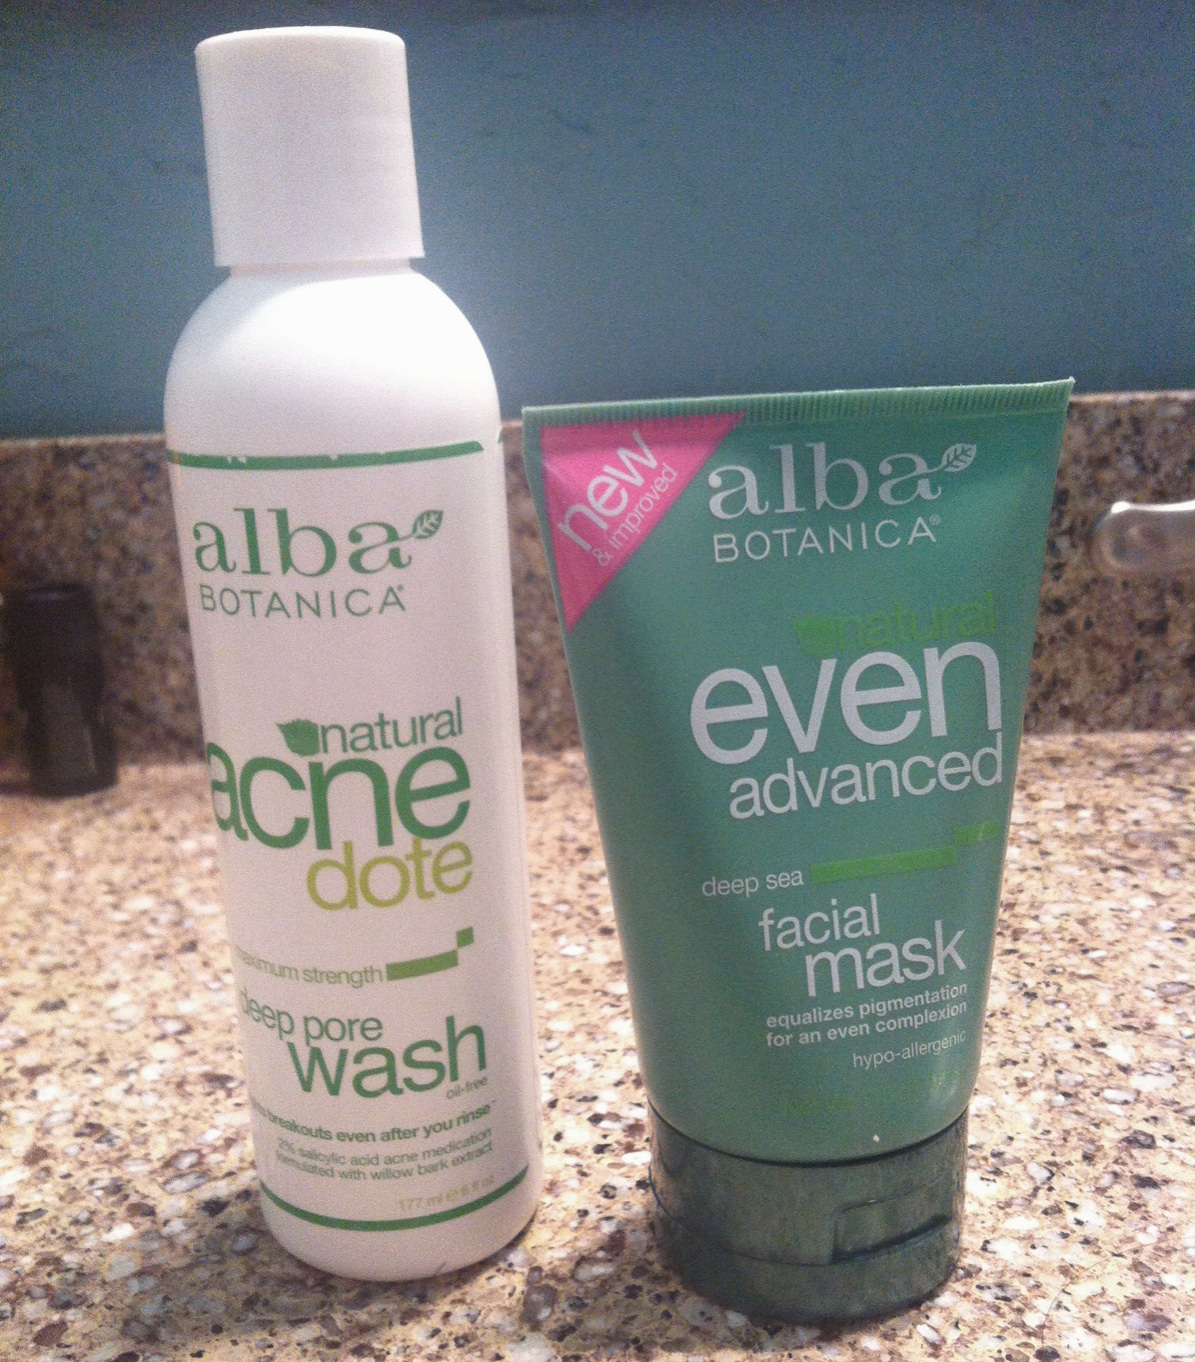 Alba Botanica Facial Wash and Mask Review | The Cliche Mermaid